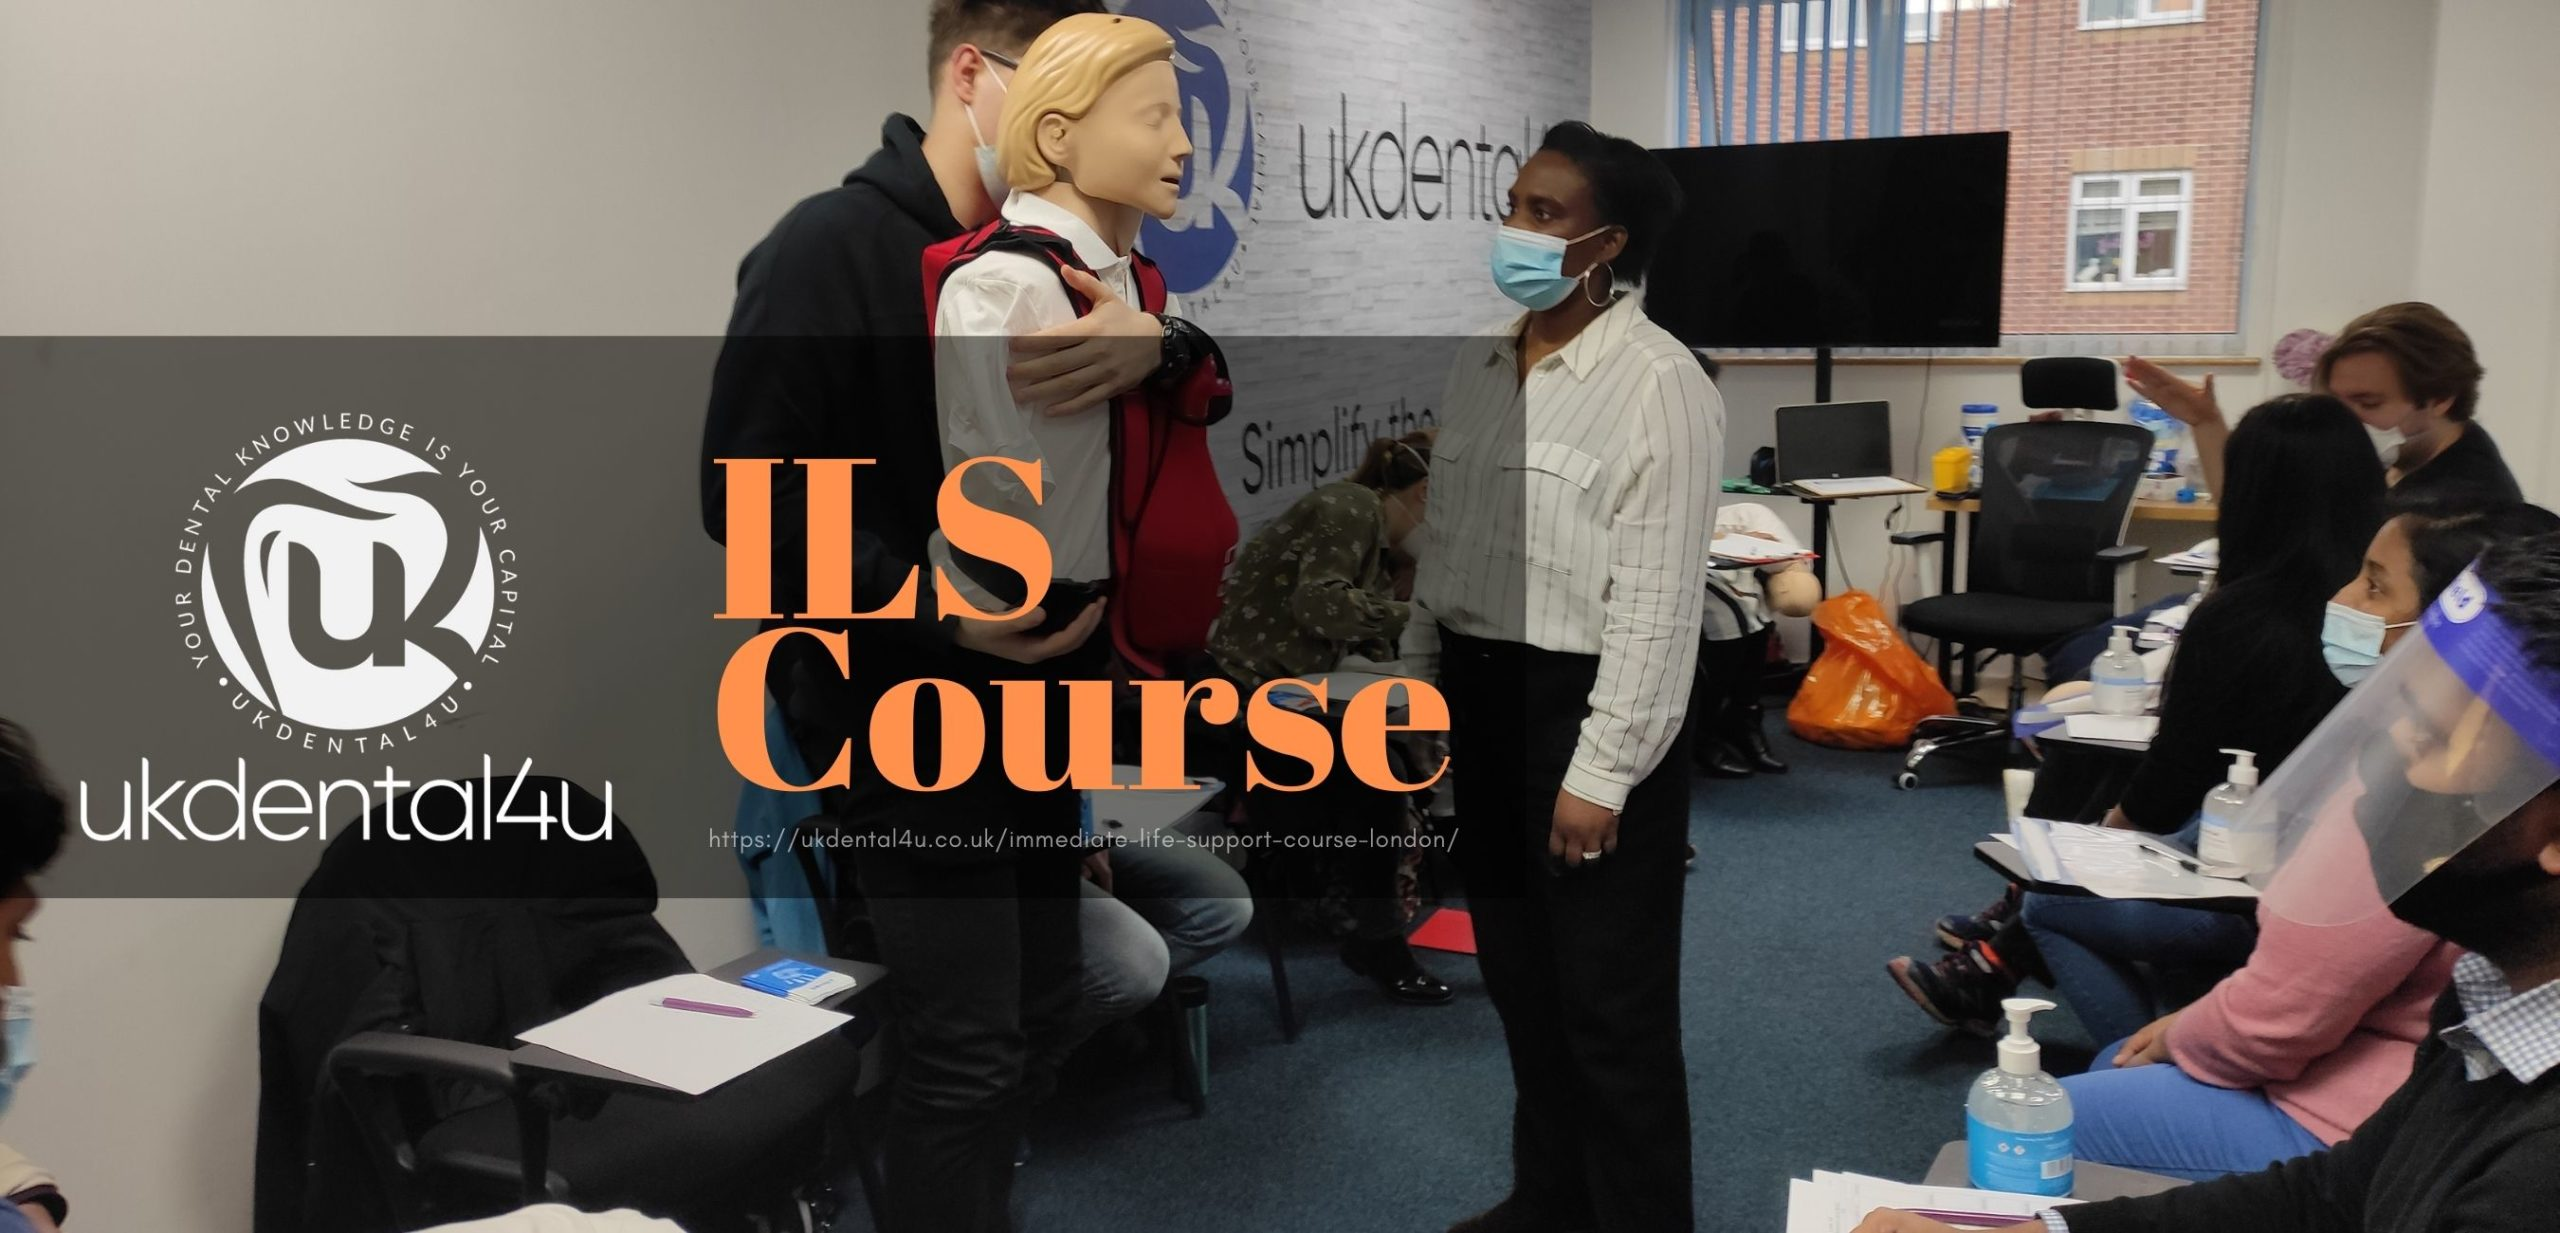 ILS course poster